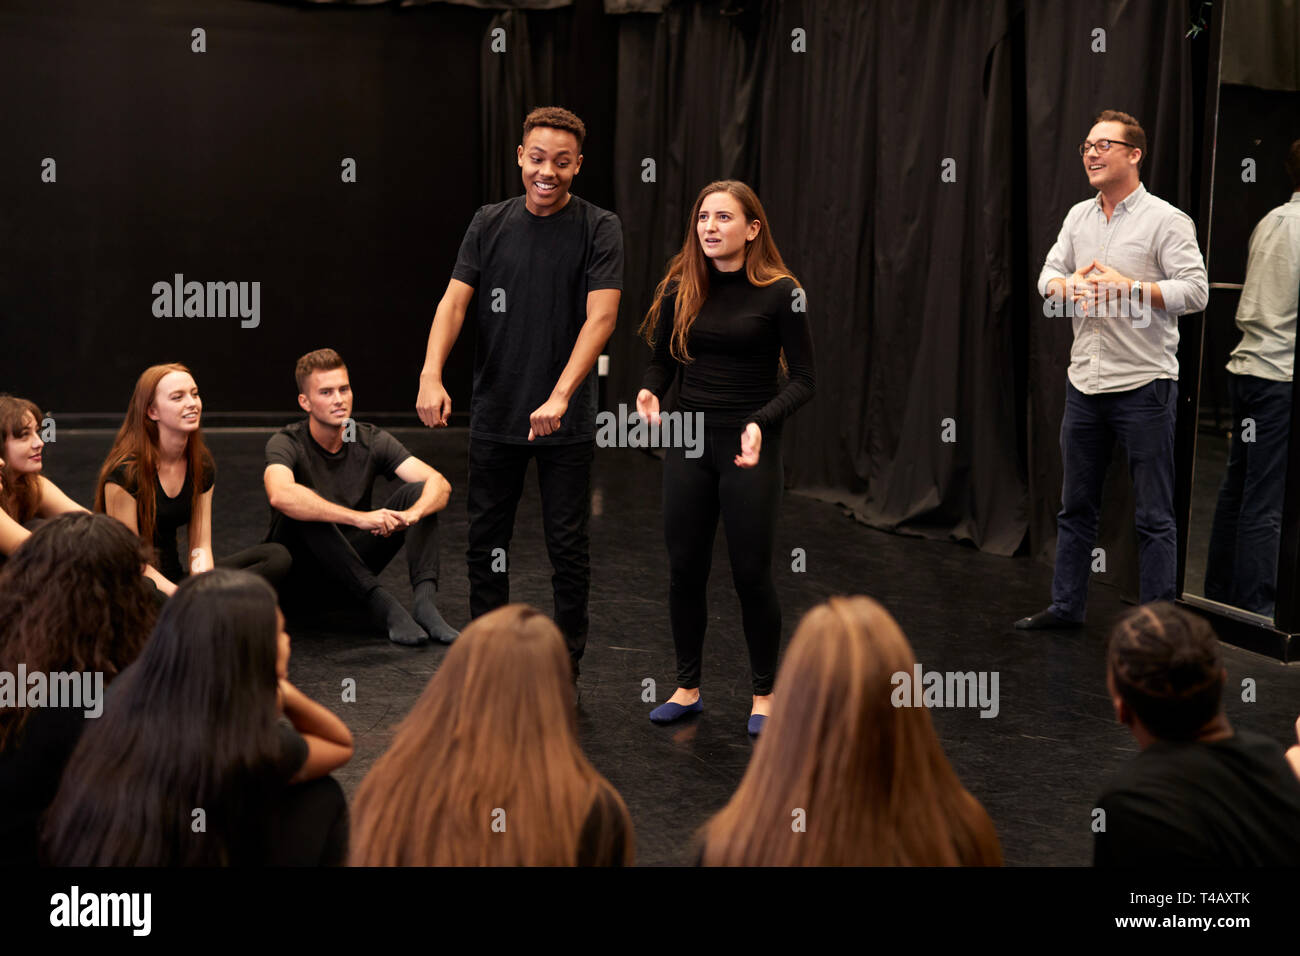 Teacher With Male And Female Drama Students At Performing Arts School In Studio Improvisation Class - Stock Image